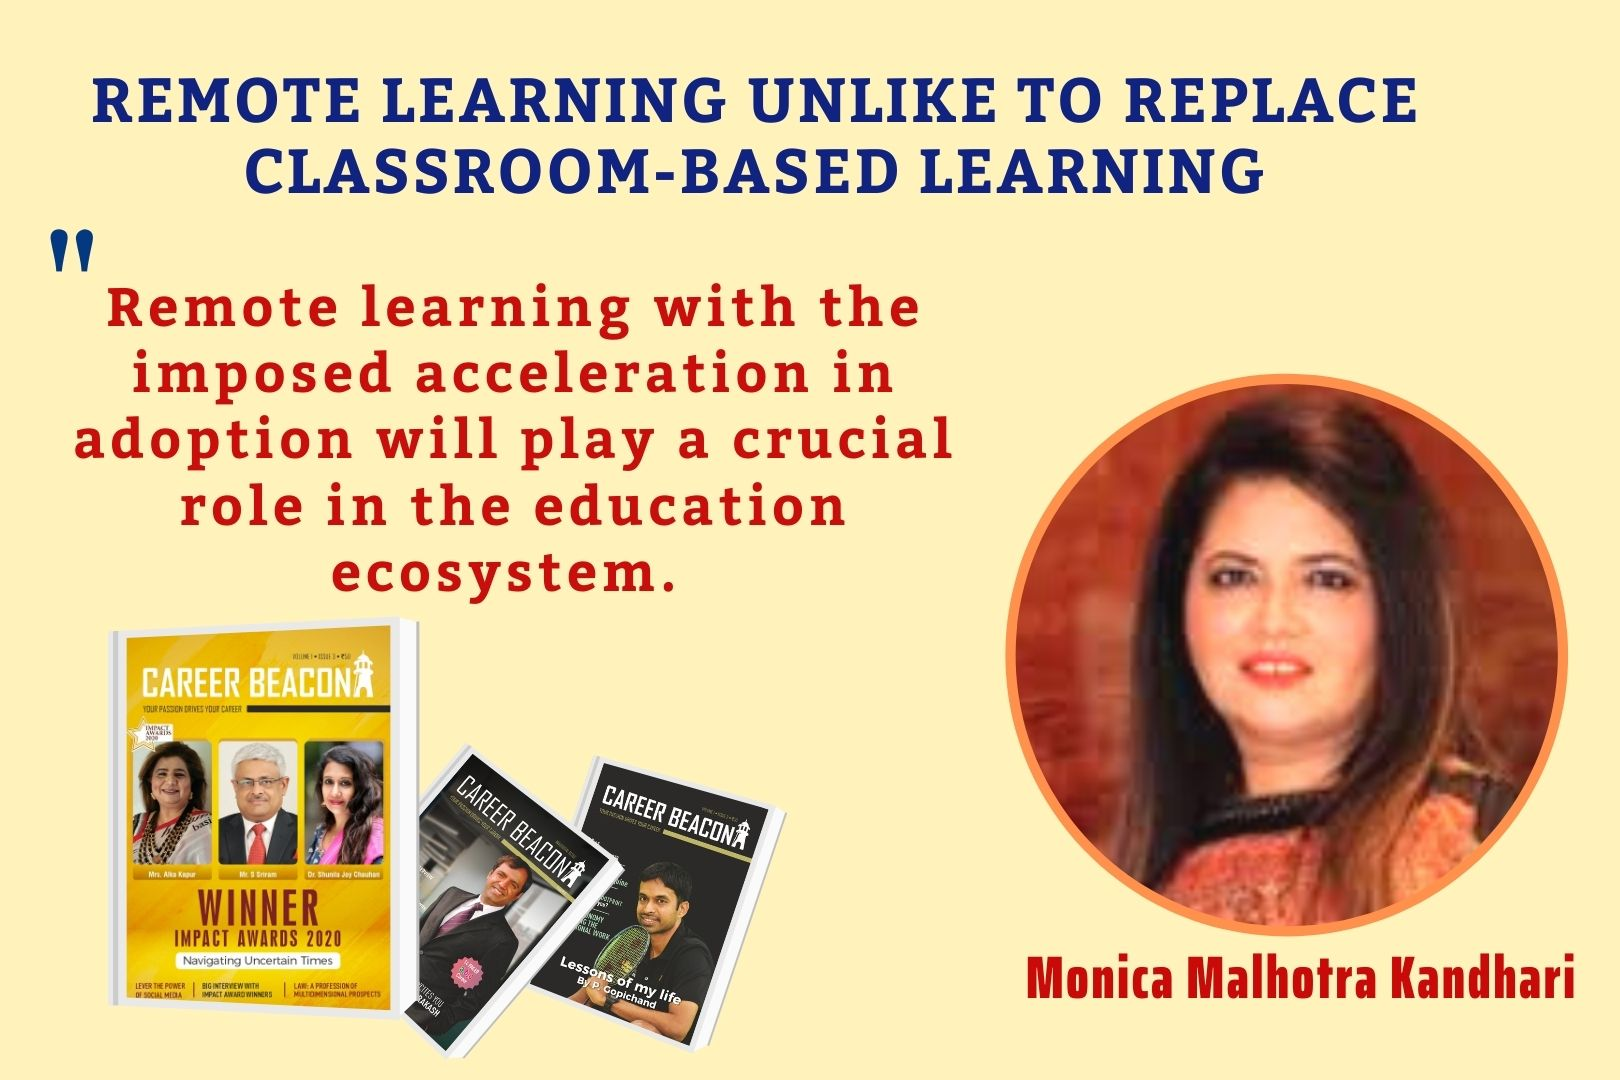 Remote Learning Unlike To Replace Classroom-Based Learning